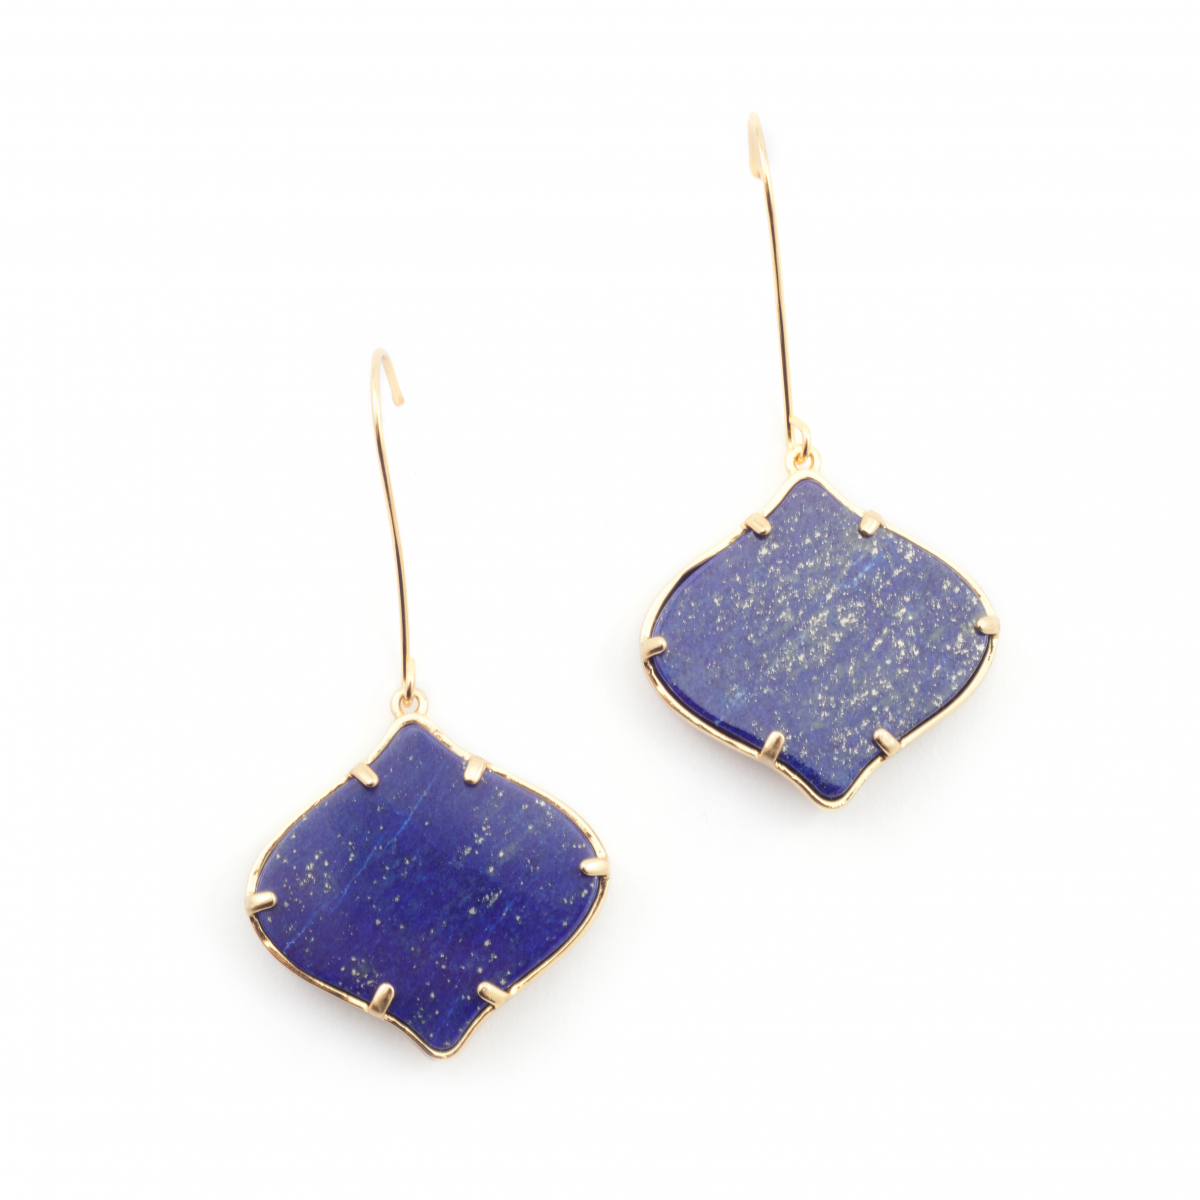 Arabesque Filigree Earrings - Lapis